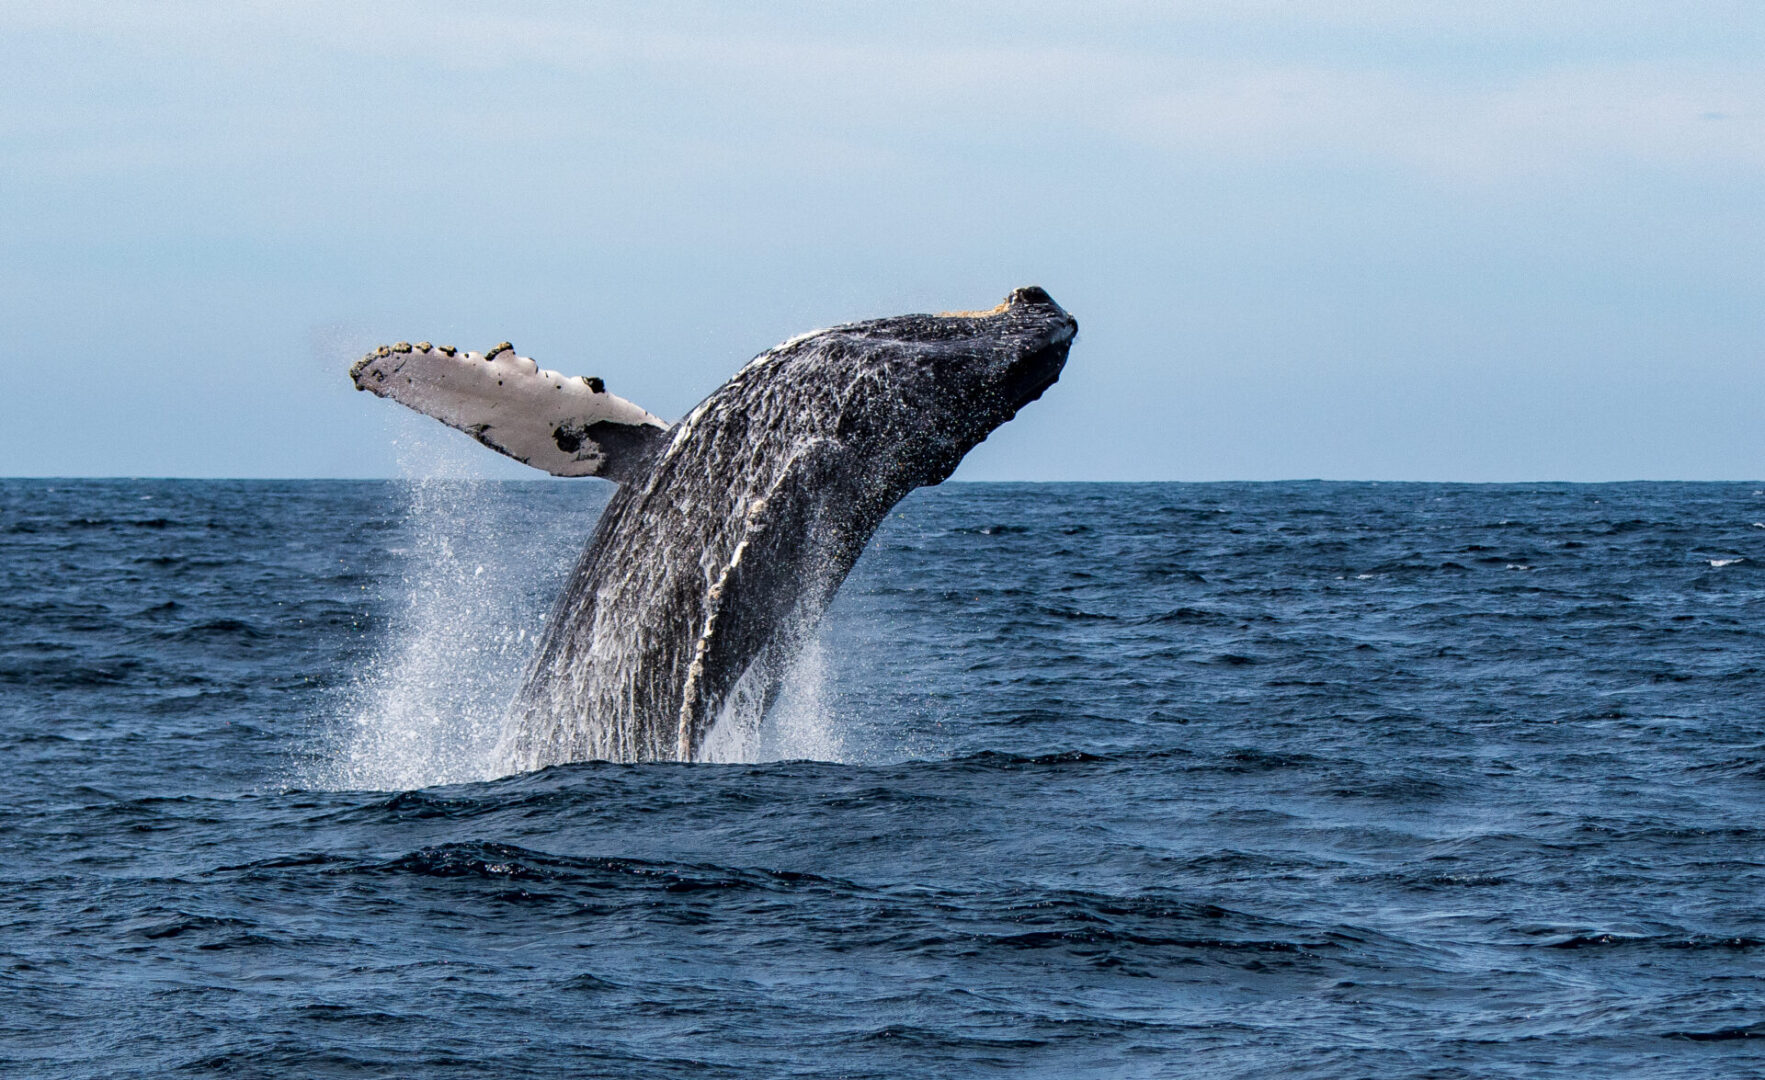 A humpback whale leaping, or breaching, out of the Sea of Cortez (Gulf of California) , Mexico, spraying water as it does so